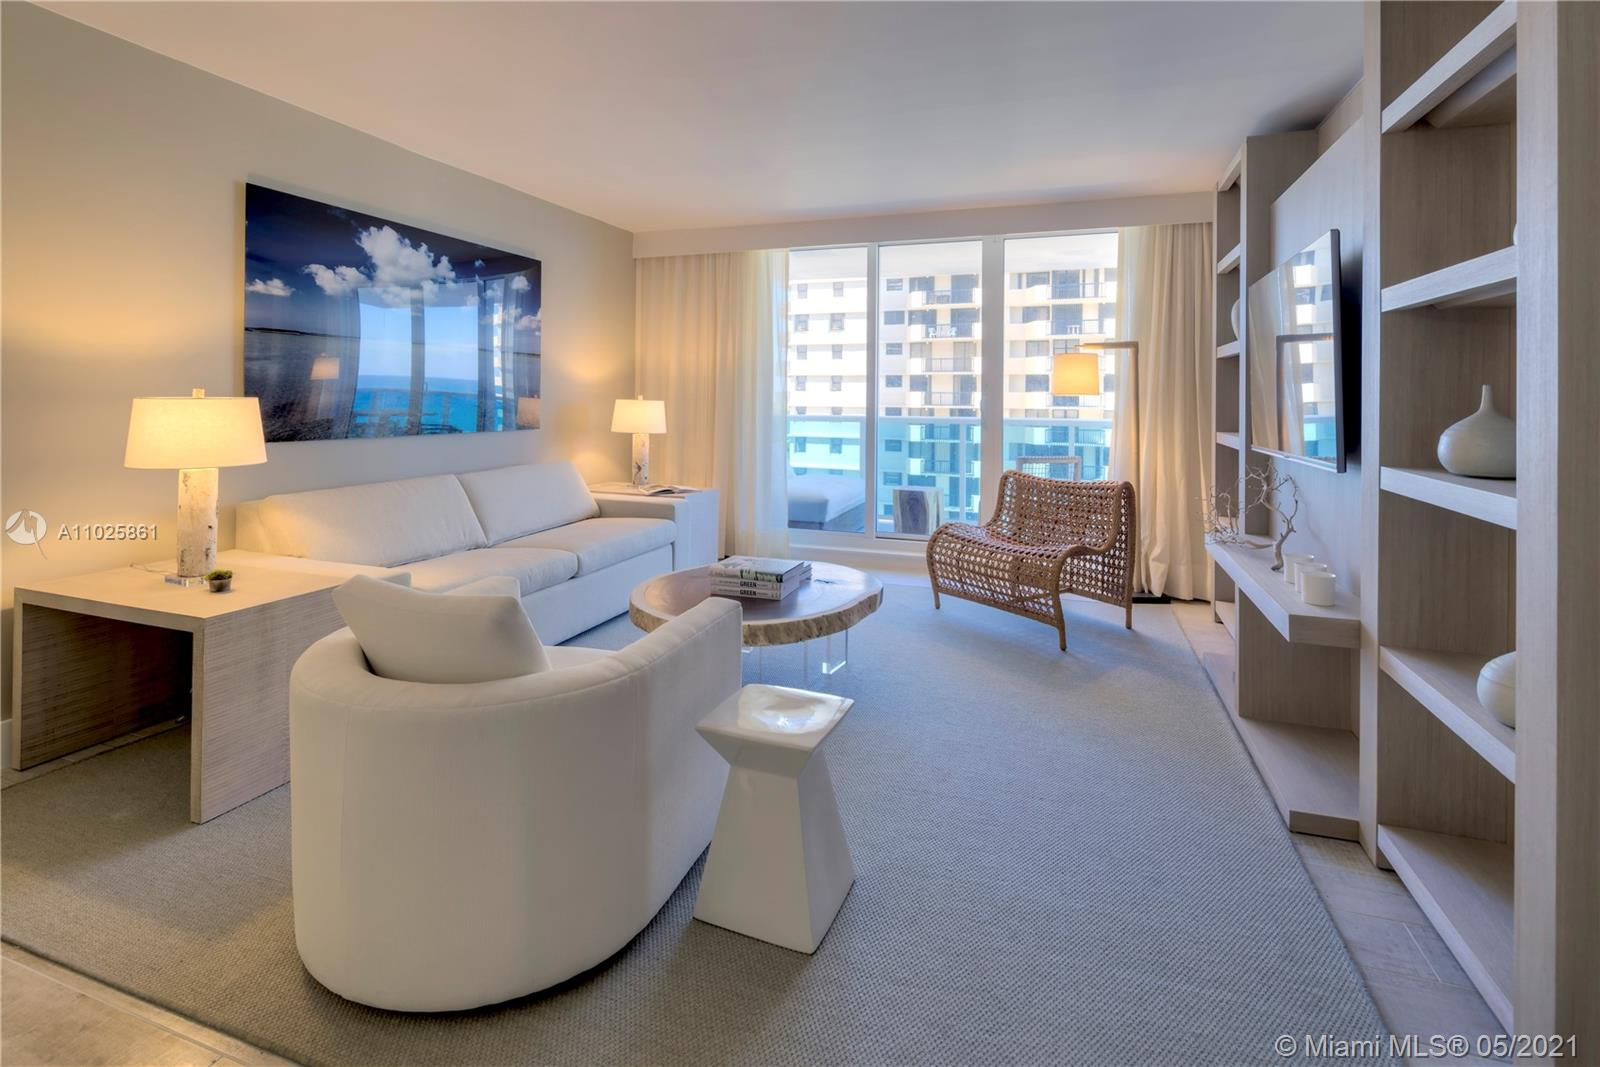 This gorgeous 985 Sq. Ft. 1 bedroom, 1 bathroom is the perfect combination of all things natural and organic in a luxurious setting. Enjoy the private fully furnished balcony complete with a custom double chaise lounge and a table set for two overlooking the Atlantic Ocean and Intracoastal. The living room has a plush white organic sofa that converts into a bed, and a gorgeous maple dining table.  ItalKraft gourmet kitchen, sensual limestone bathrooms with luxurious Dornbracht fixtures. Enjoy a variety of services including a private fully-staffed residence lobby, valet attendants, personal concierge, and chauffeured Tesla SUV's. Eco-conscious amenities to include 4 pools, 4 restaurants, 3 bars, 14,000 sq. ft. gym, Bamford spa, hair salon, Soul Cycle, and mjuch more.